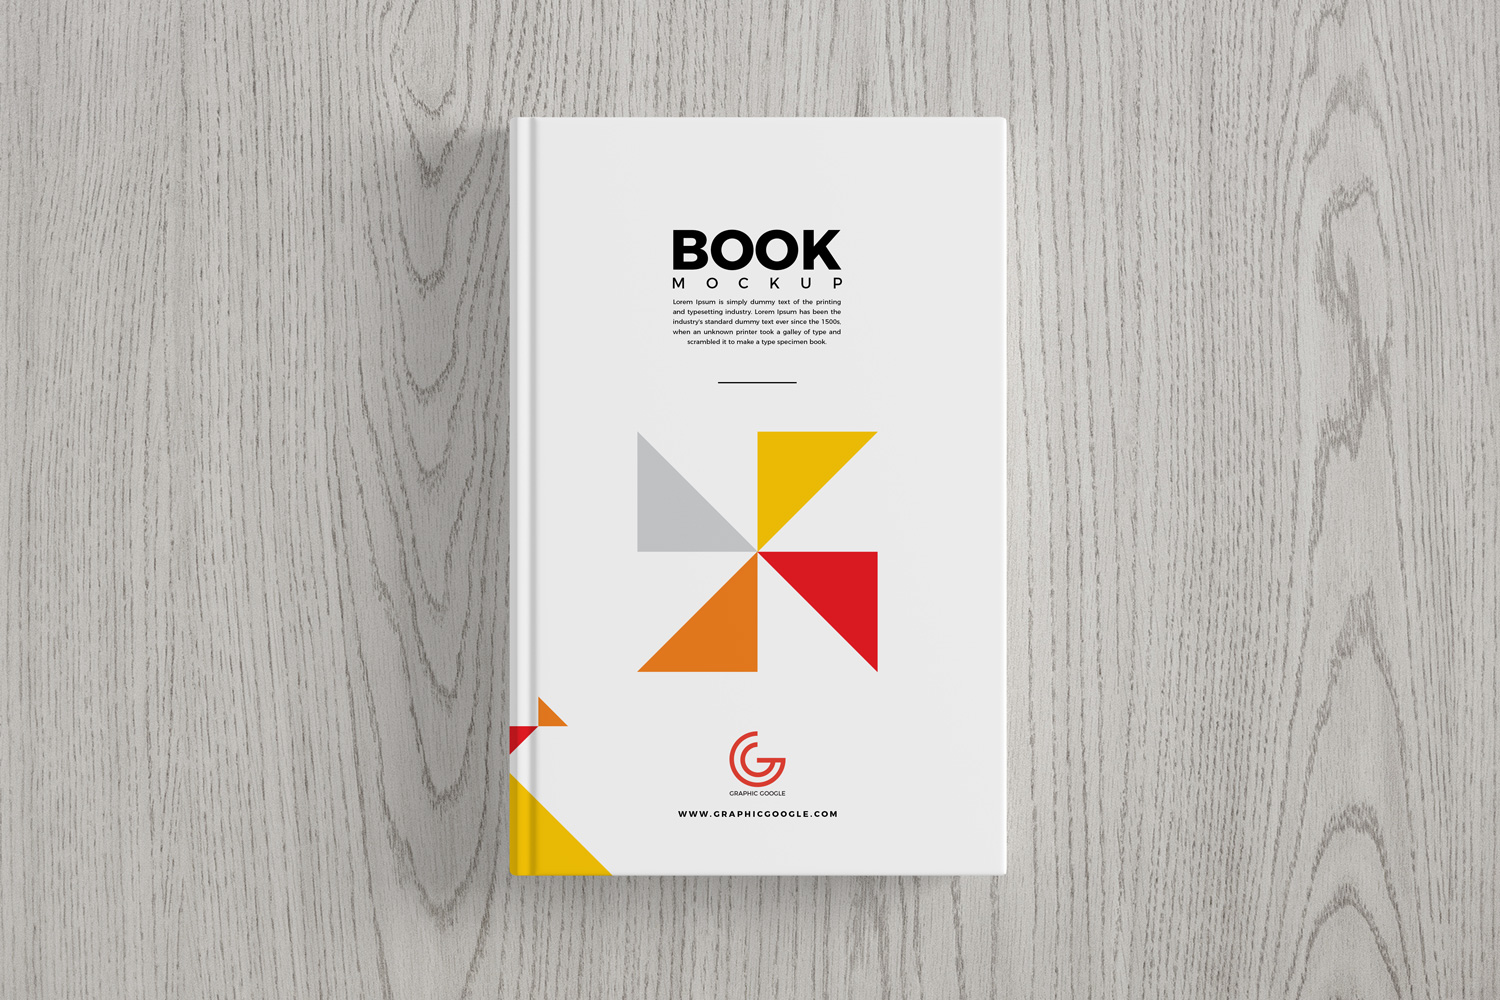 Free-Book-Cover-Mockup-PSD-For-Branding-3